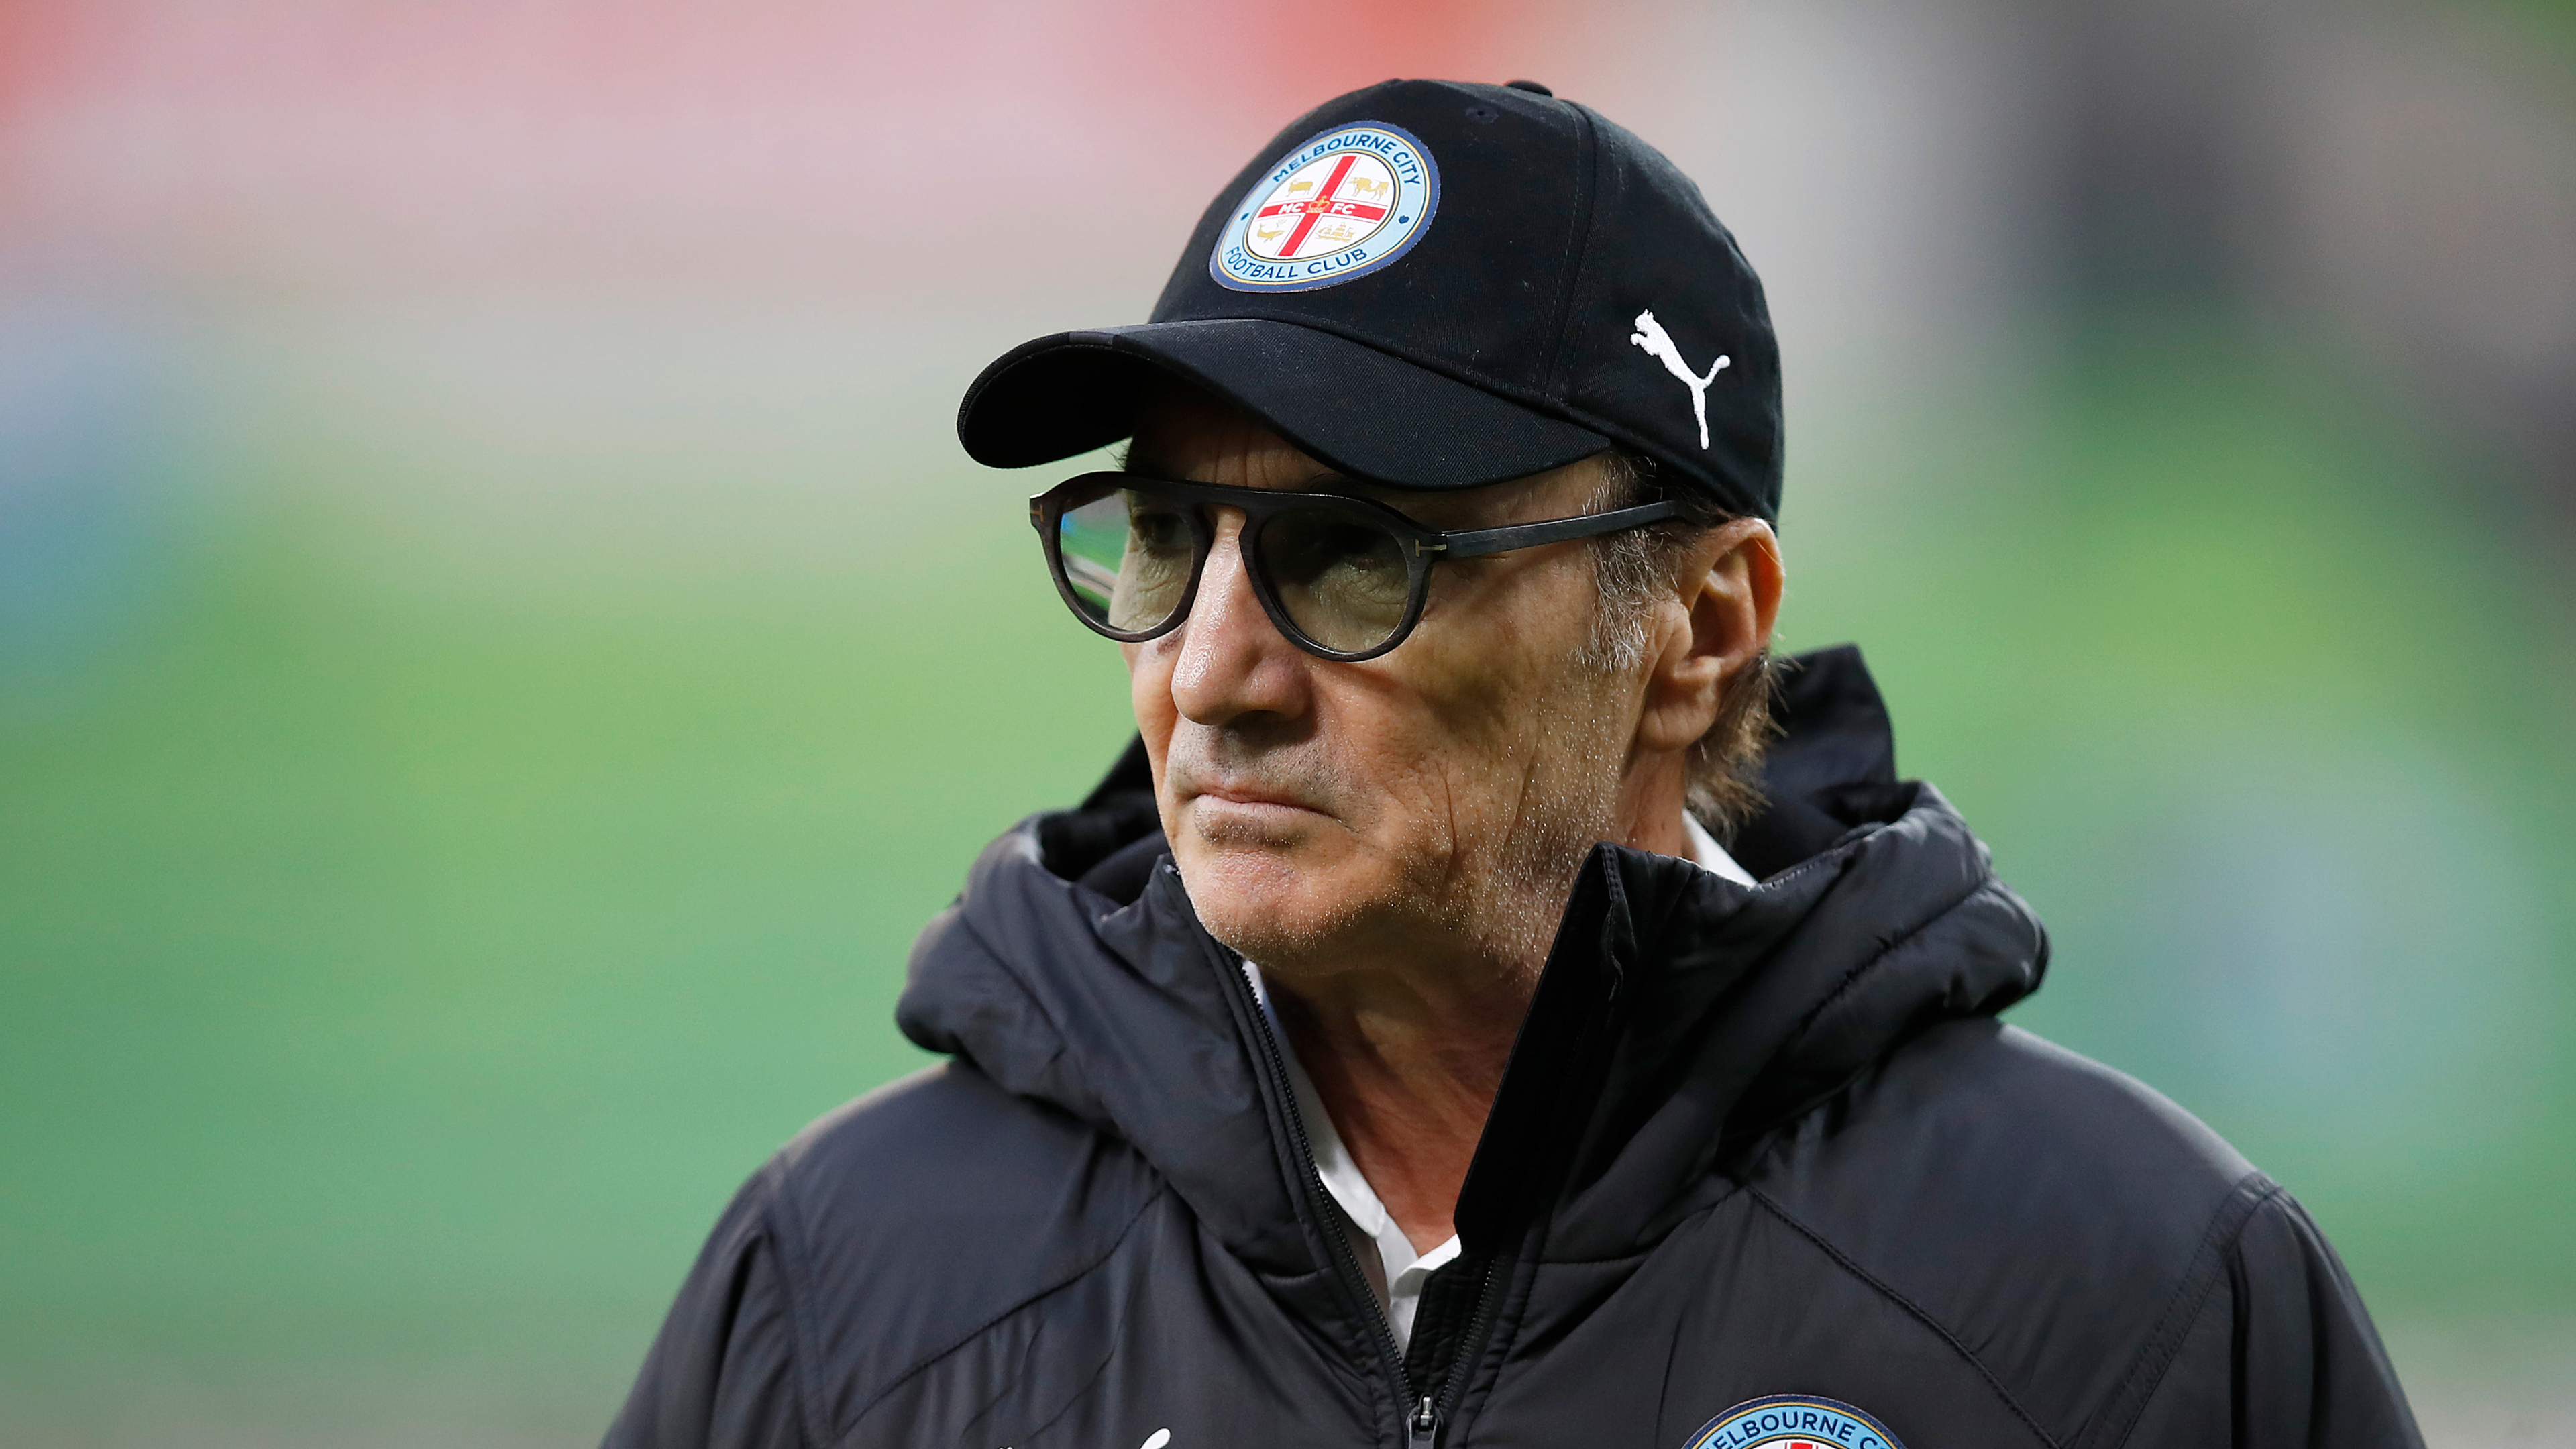 A-League and Australian football news LIVE: Melbourne City coach opts not to travel